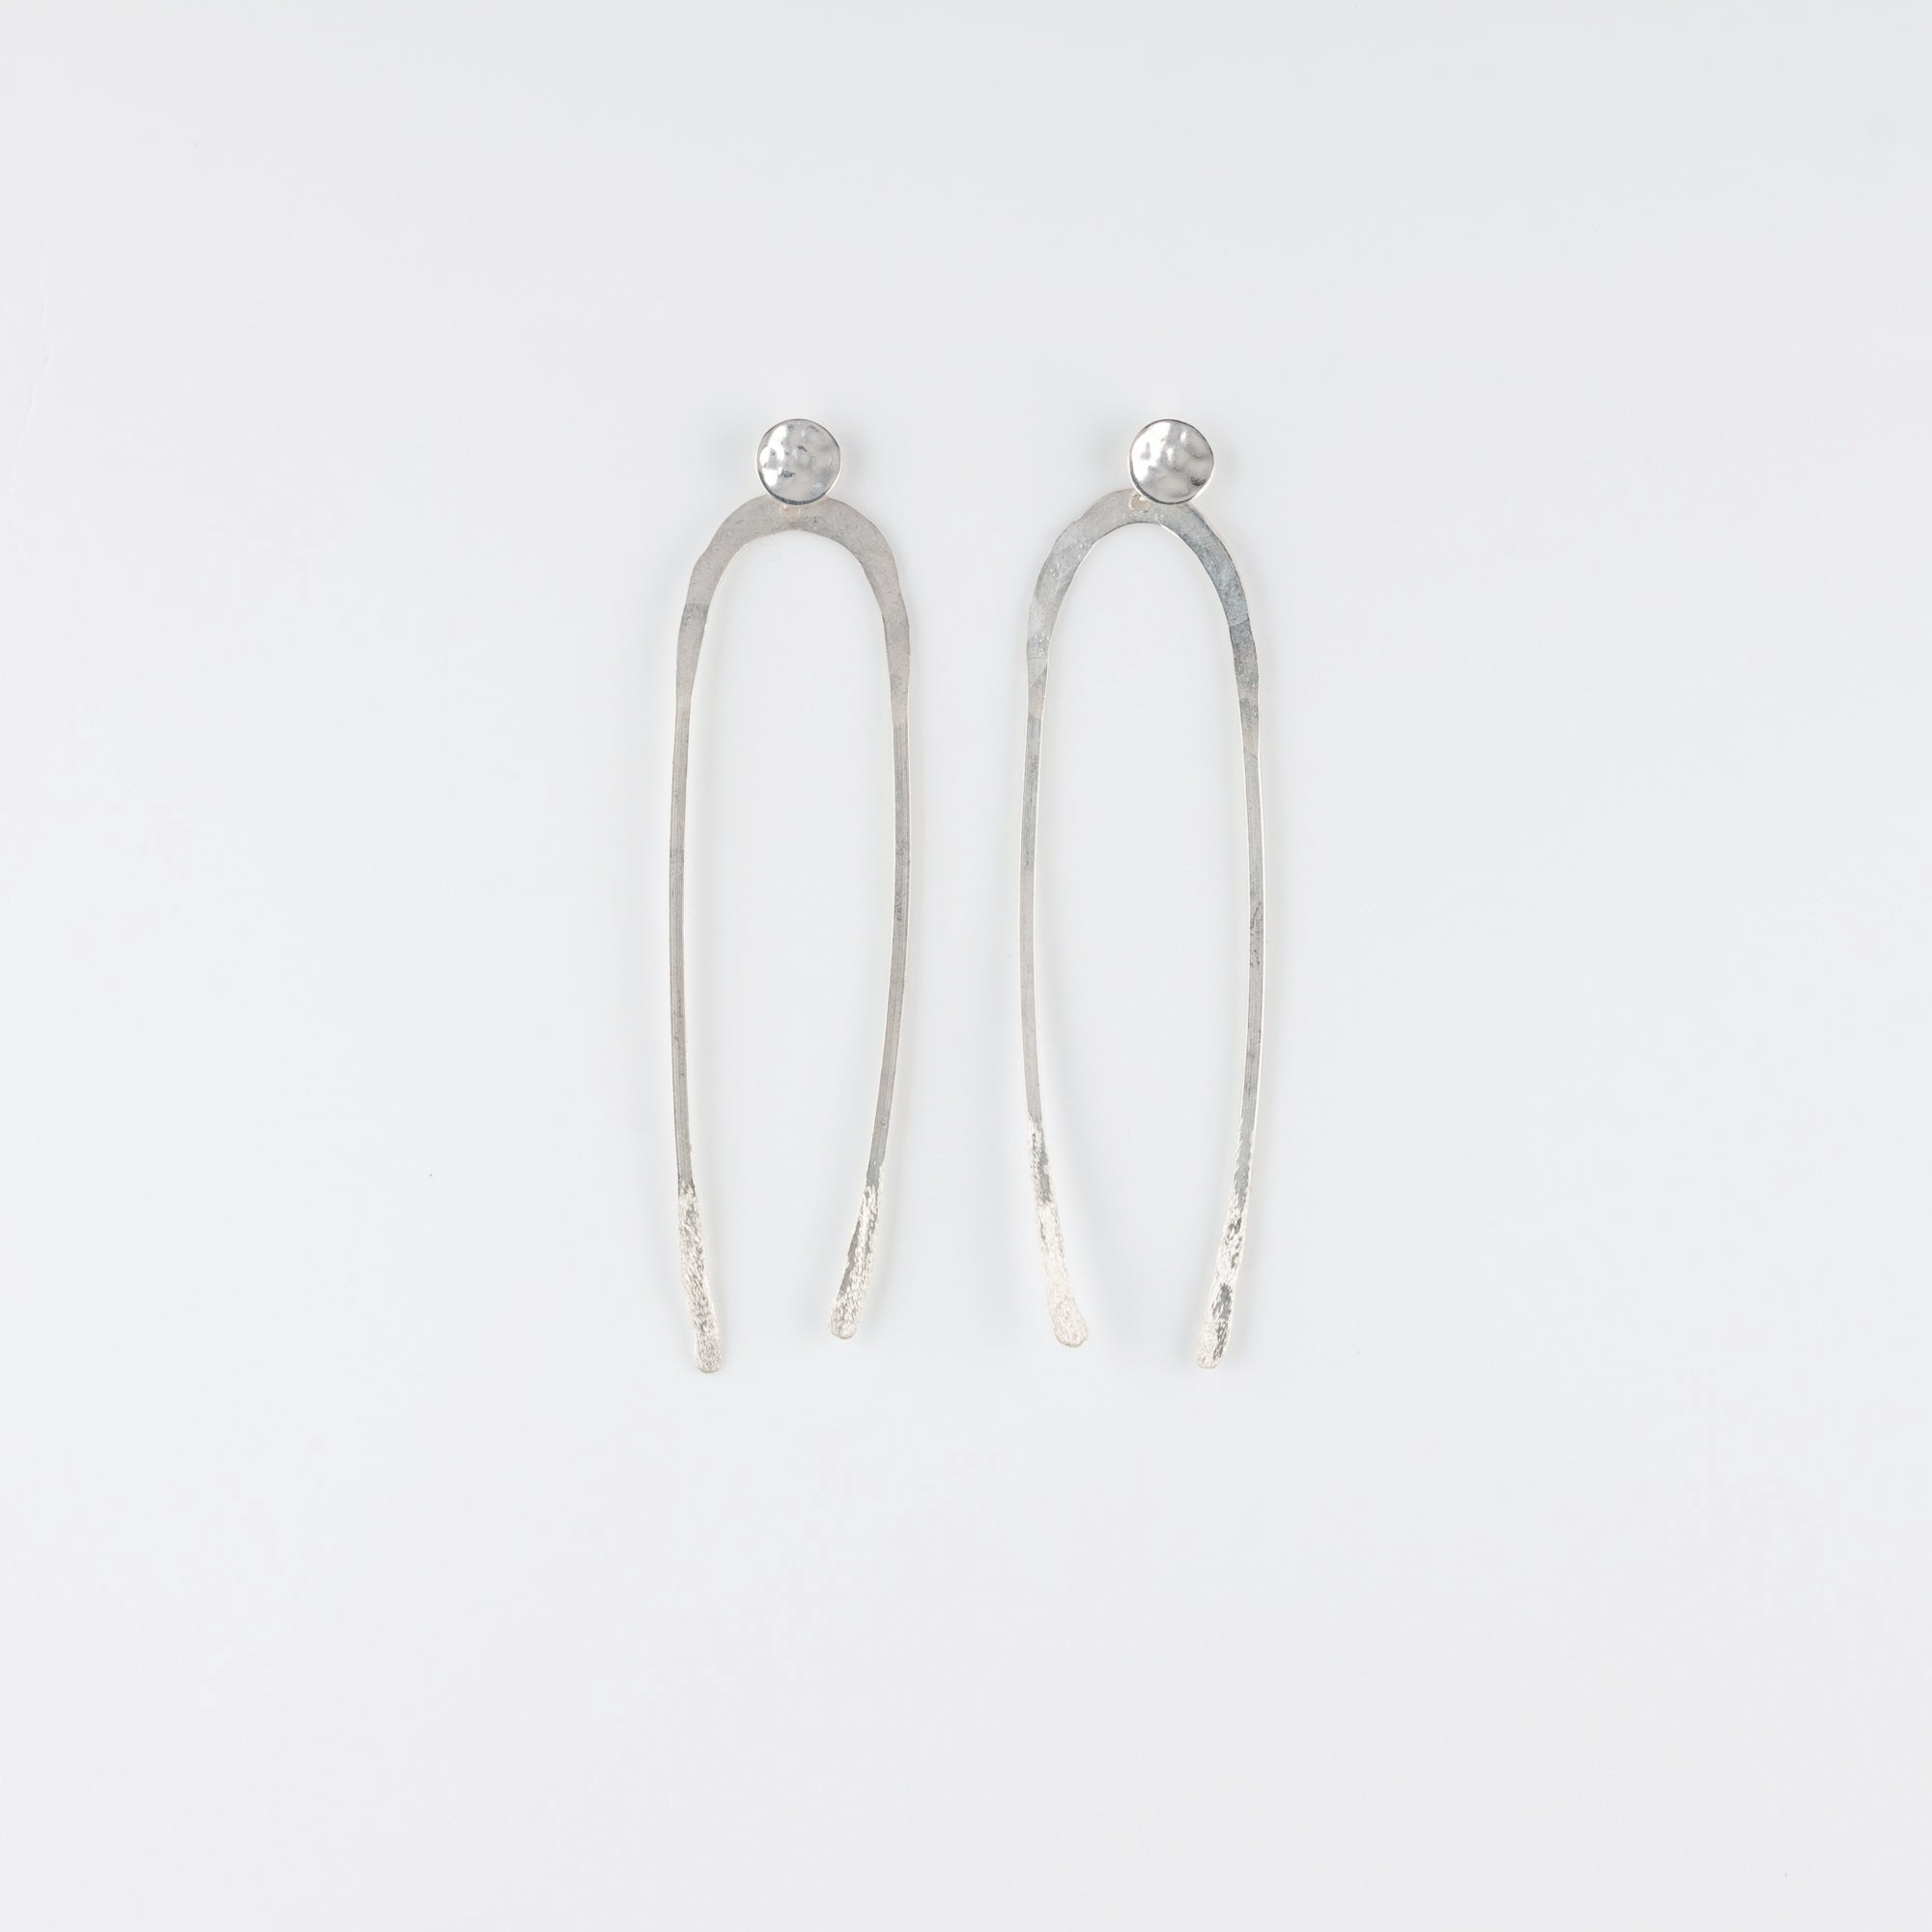 ARCO STERLING SILVER POST EARRINGS // LARGE